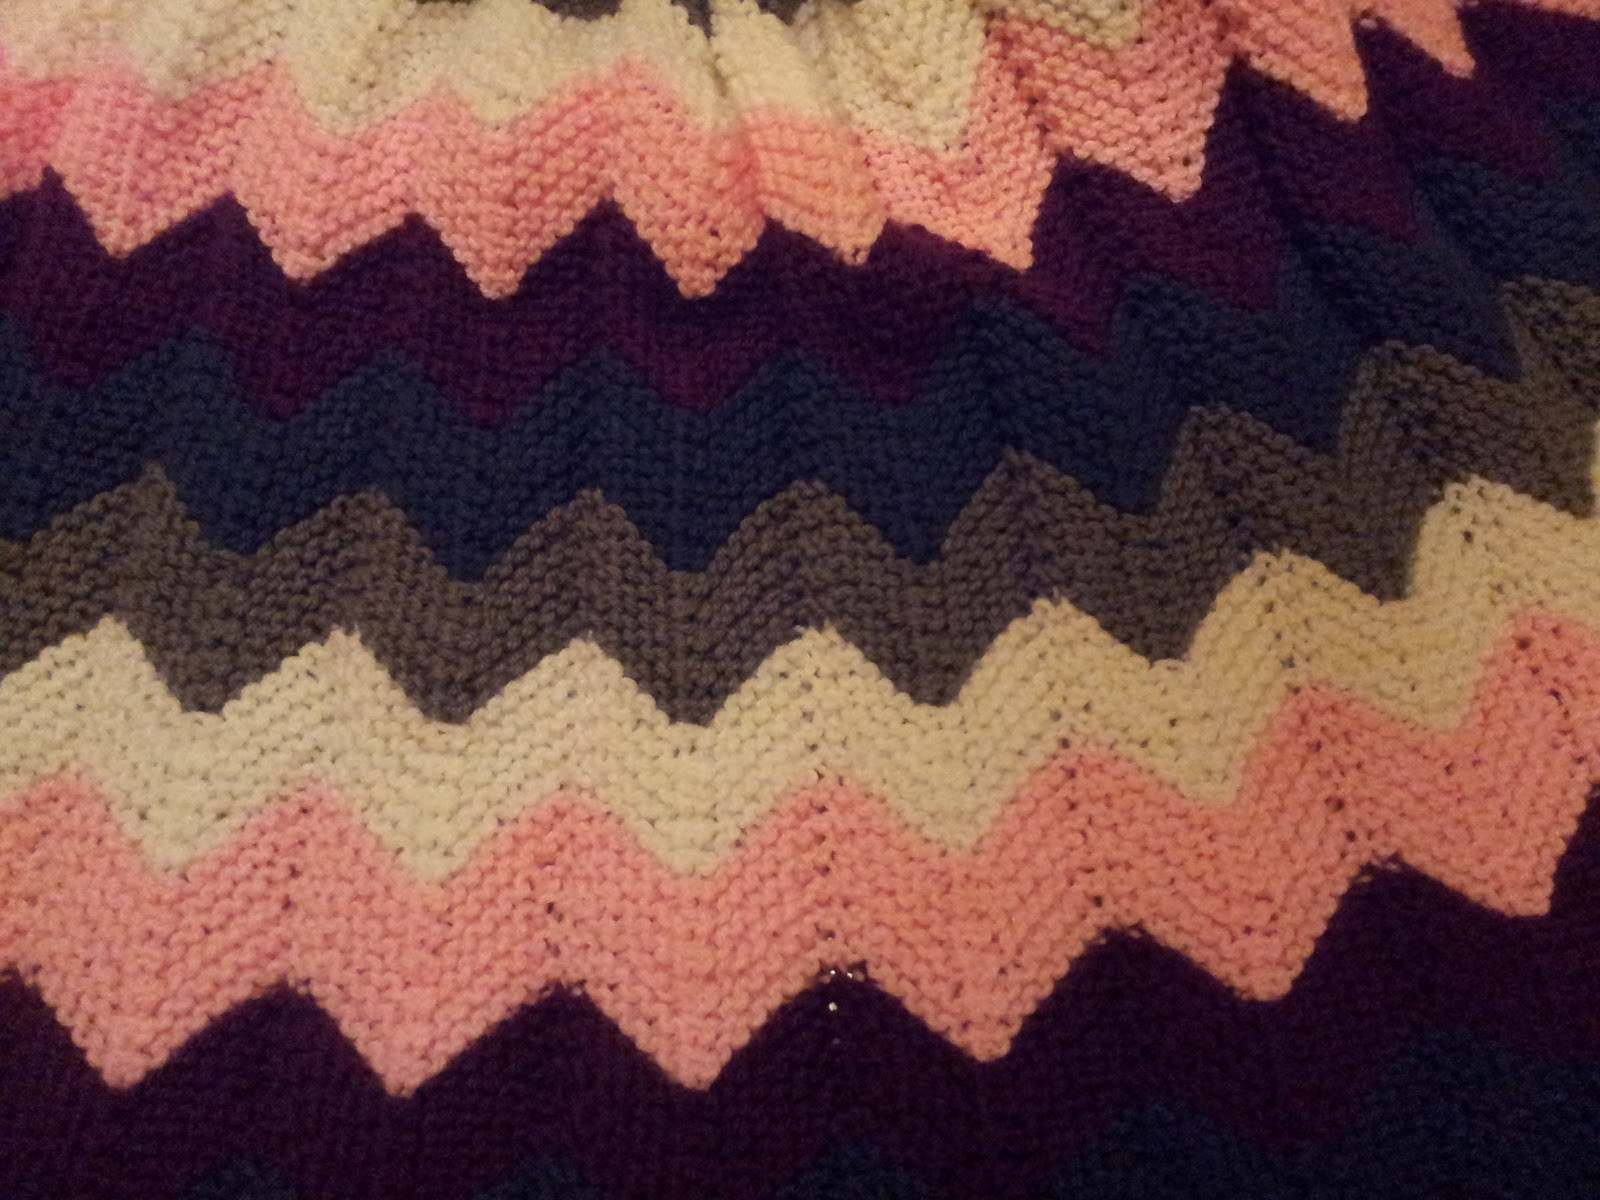 Knitted Afghan Patterns Fresh Knitted Afghan Patterns Of New 43 Photos Knitted Afghan Patterns